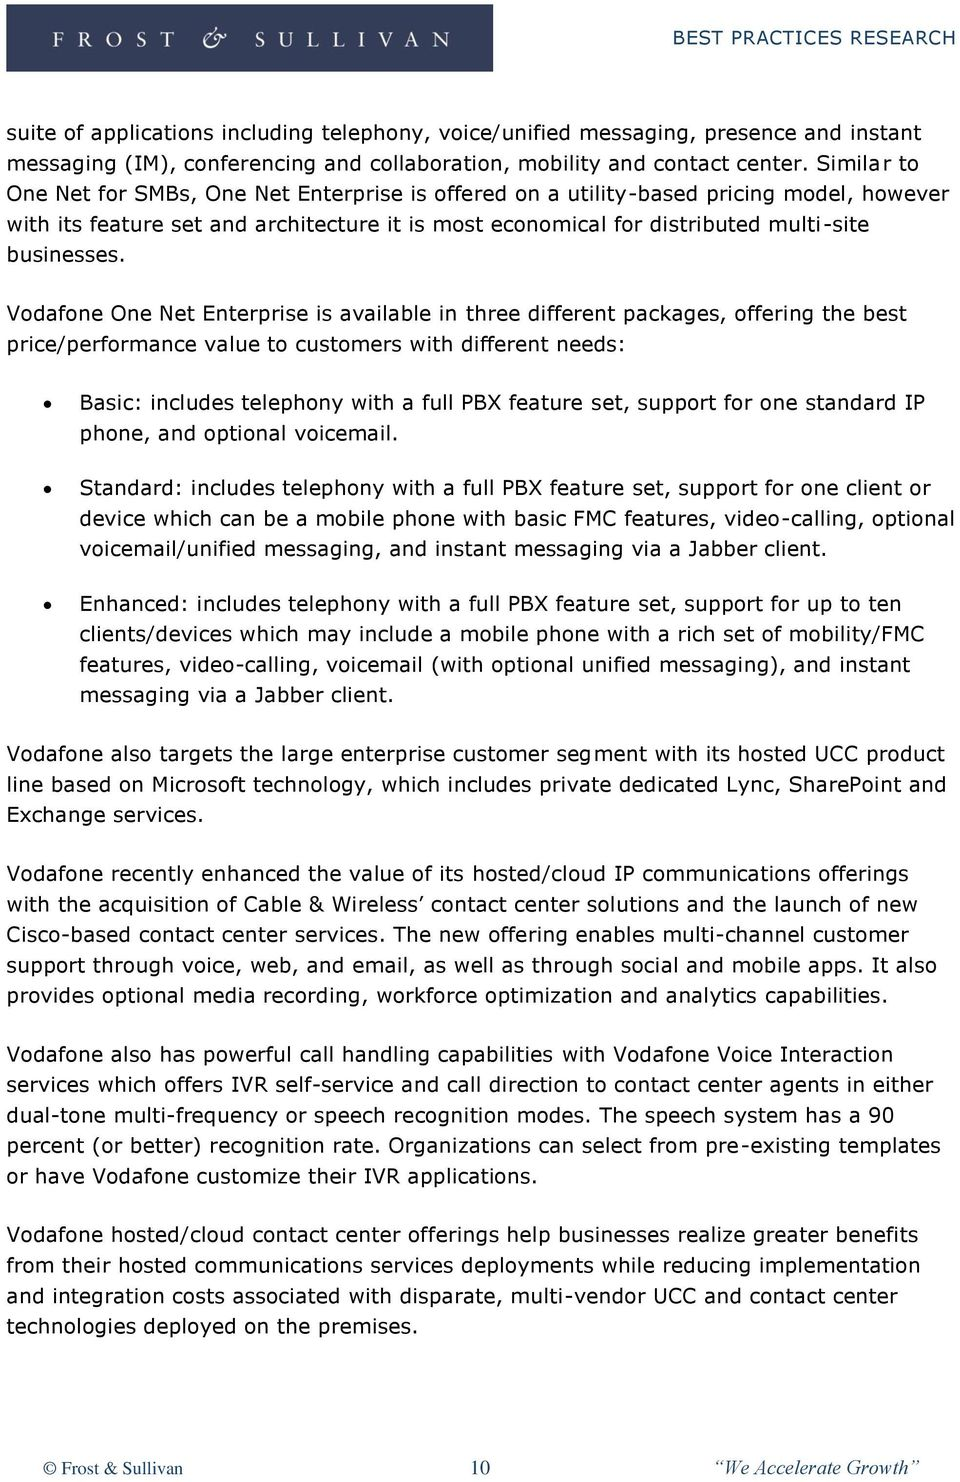 Vodafone One Net Enterprise is available in three different packages, offering the best price/performance value to customers with different needs: Basic: includes telephony with a full PBX feature